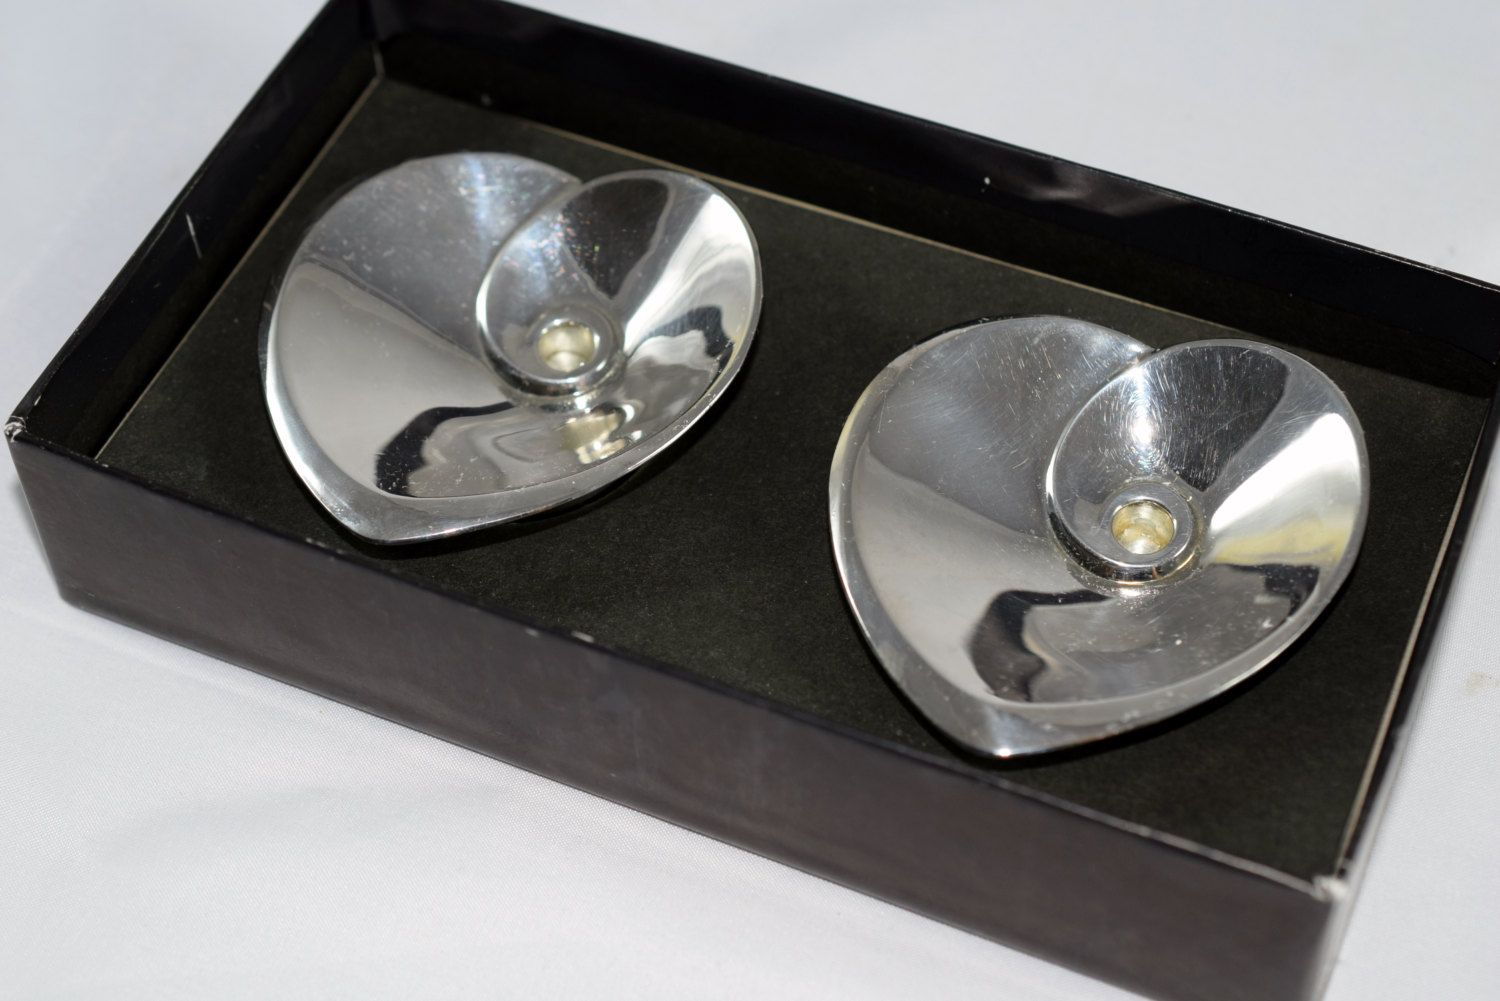 DANSK Silver Plate Hearts Tiny Taper Candle Holders Designed by Vivianna Torun Bulow-Hube, Made in Japan by TheTreasureBoxOrna on Etsy